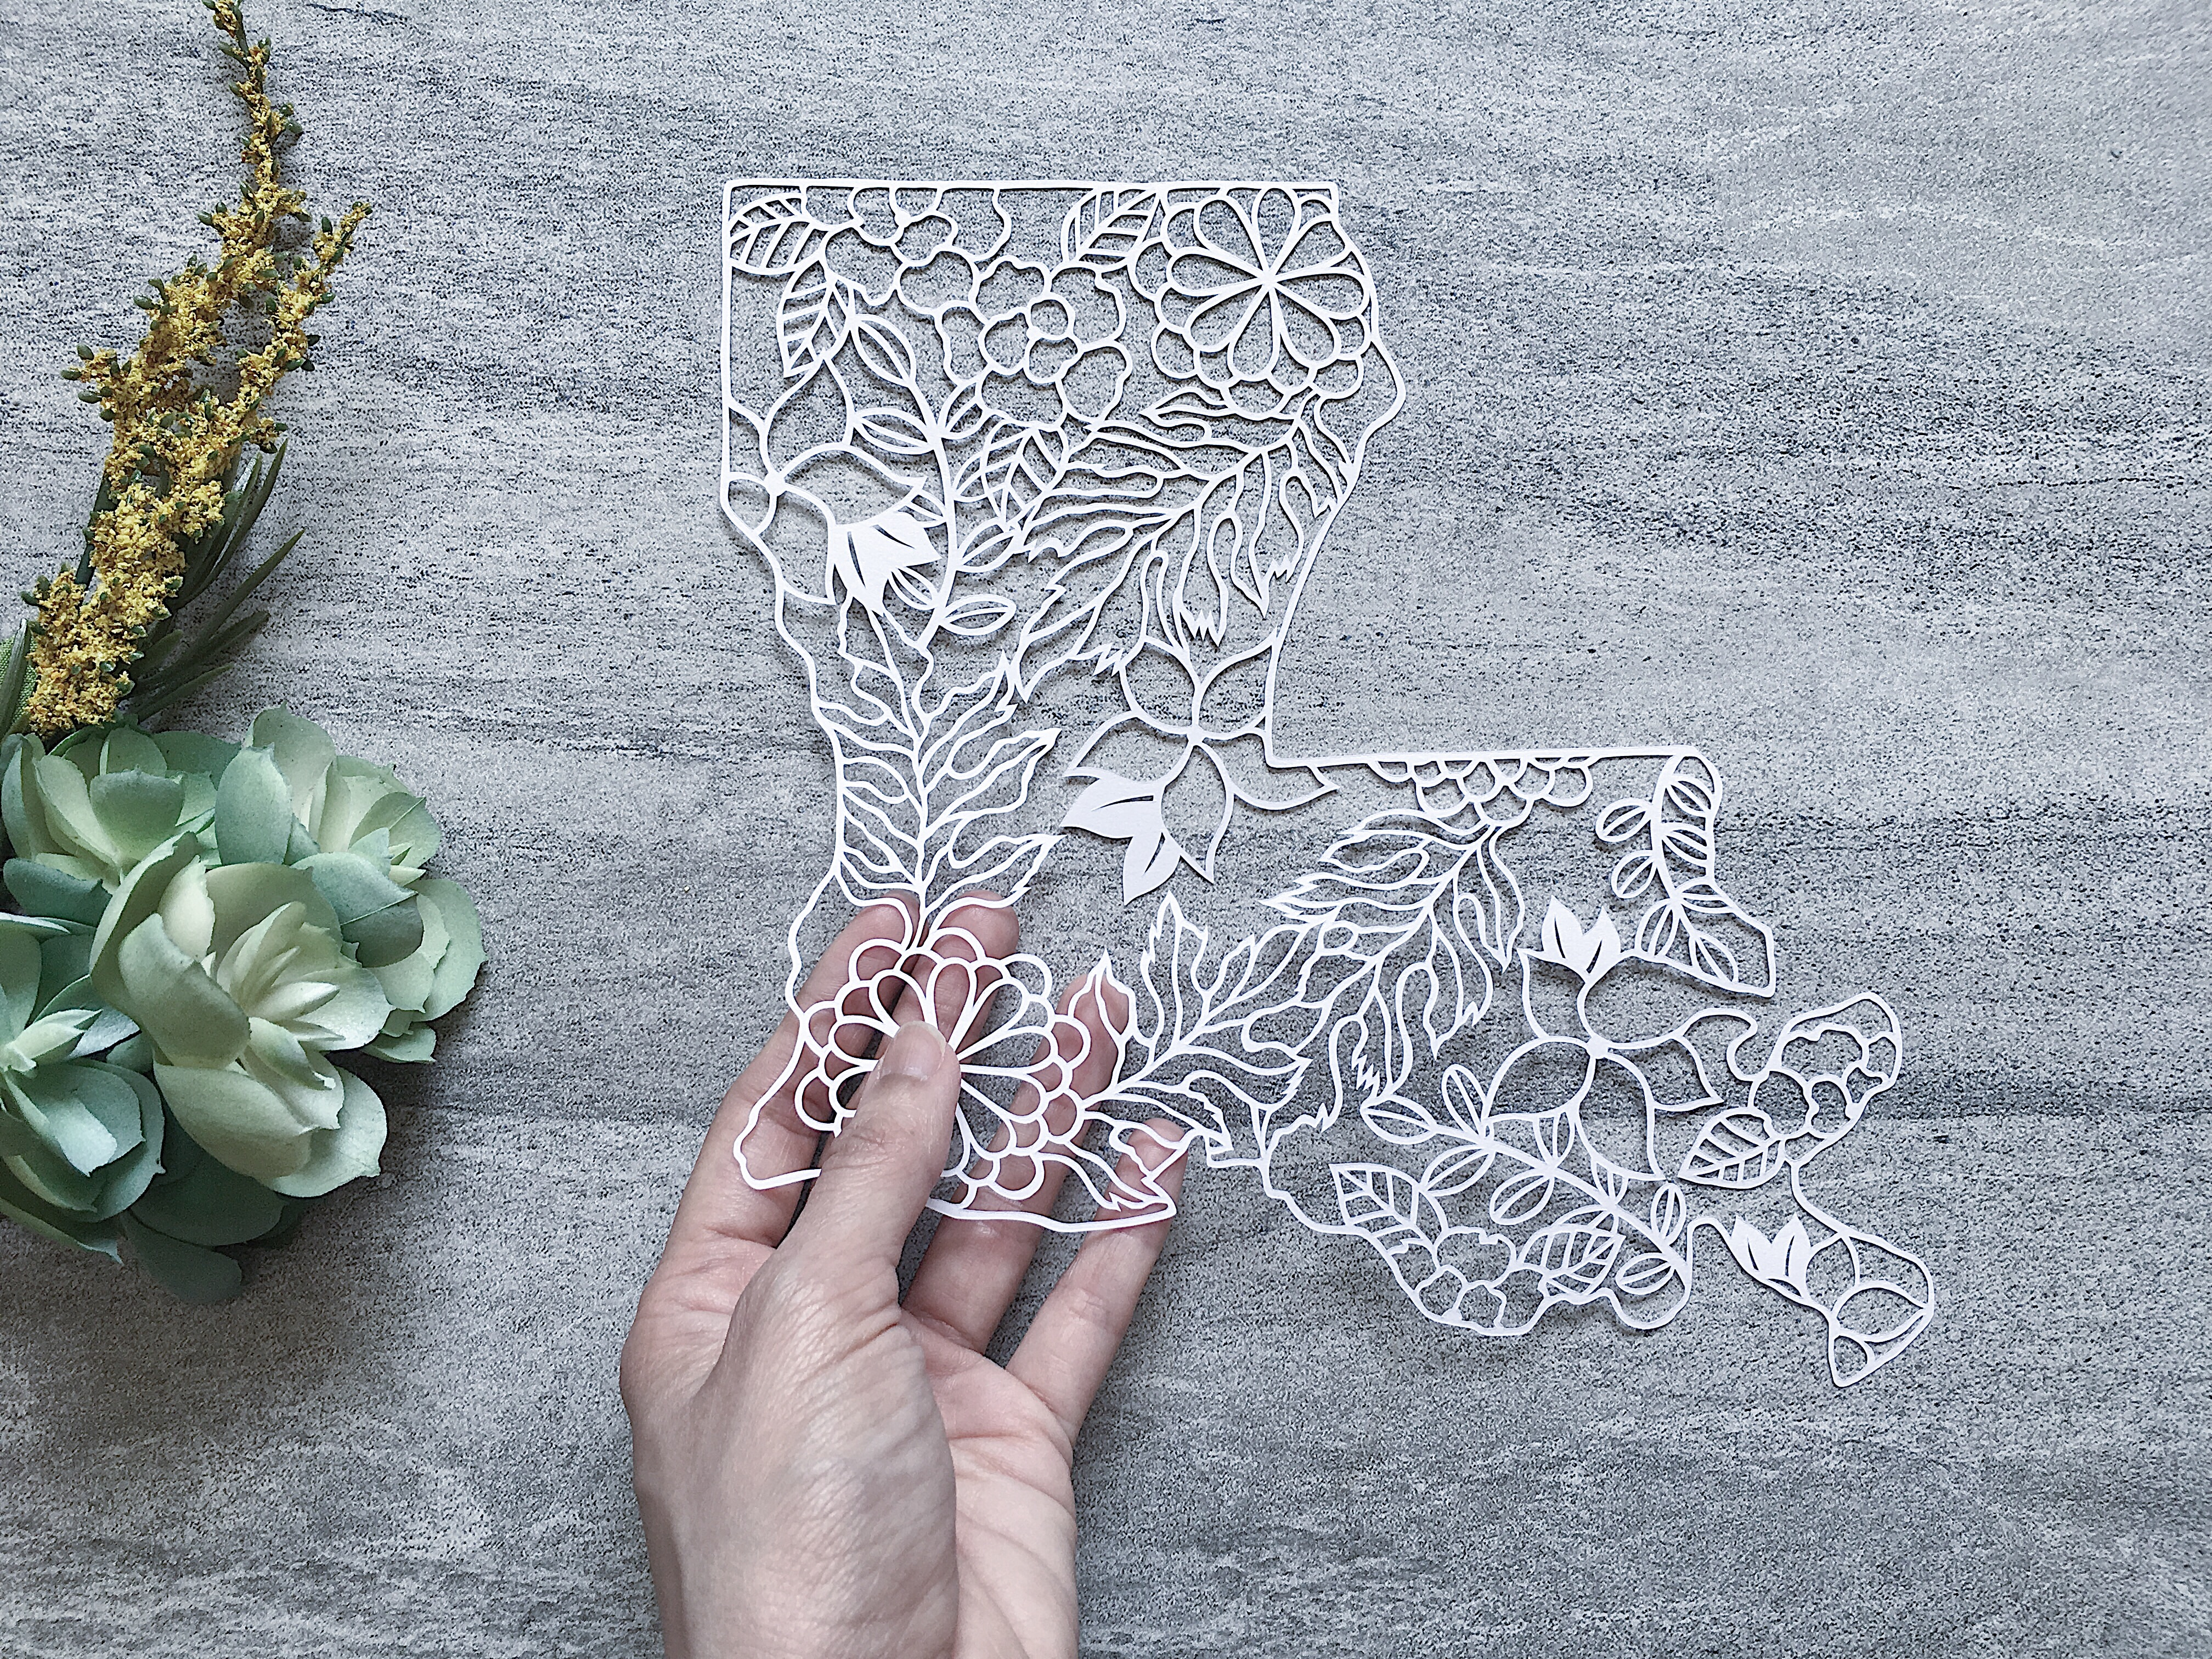 louisiana-papercut-map-scherenschnitte-papercutting-housewarming-gift-home-decor (6)